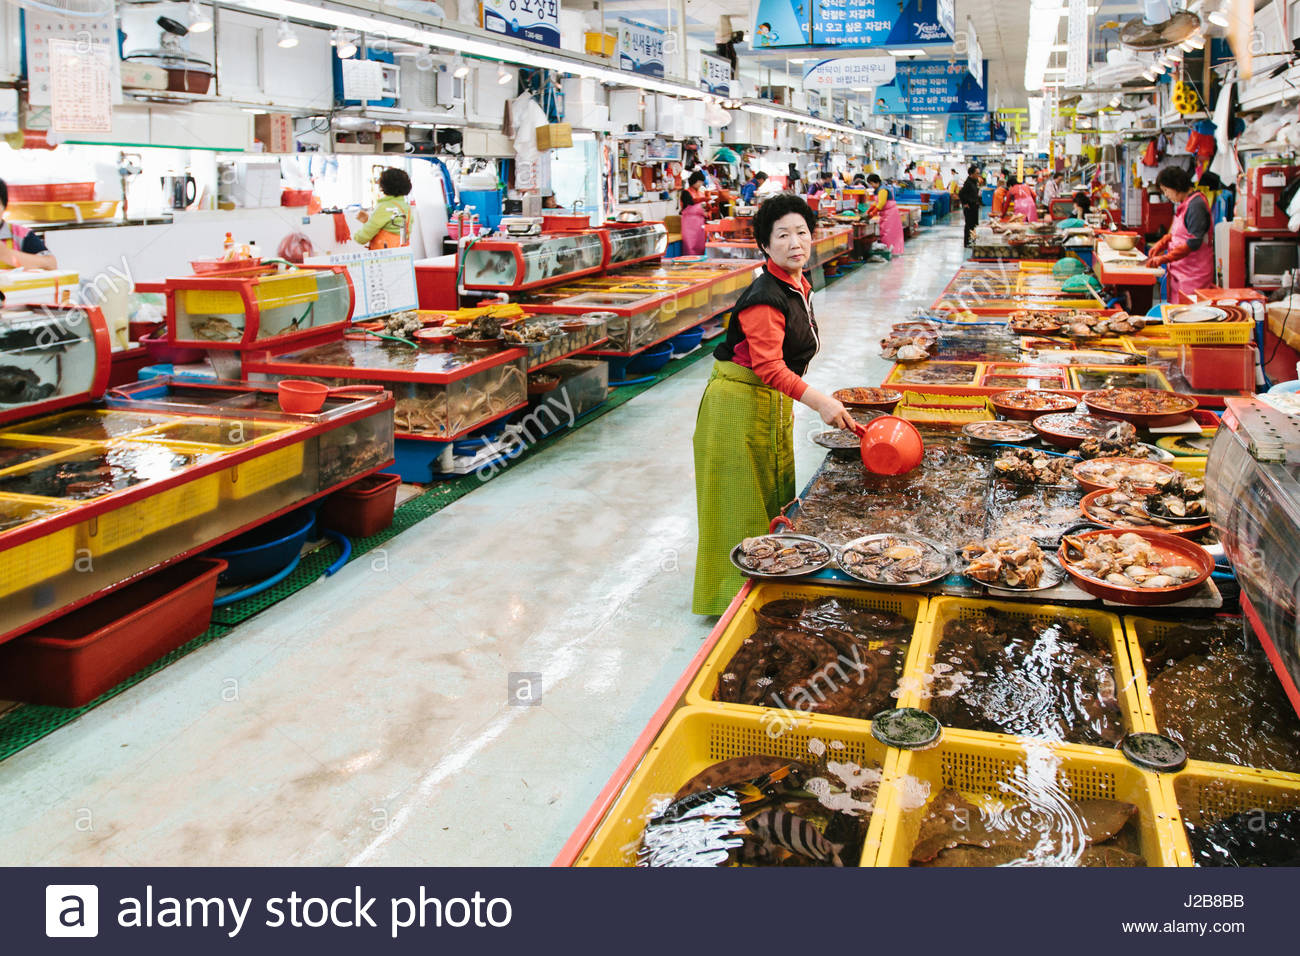 Seafood tank stock photos seafood tank stock images alamy for Online fish stores